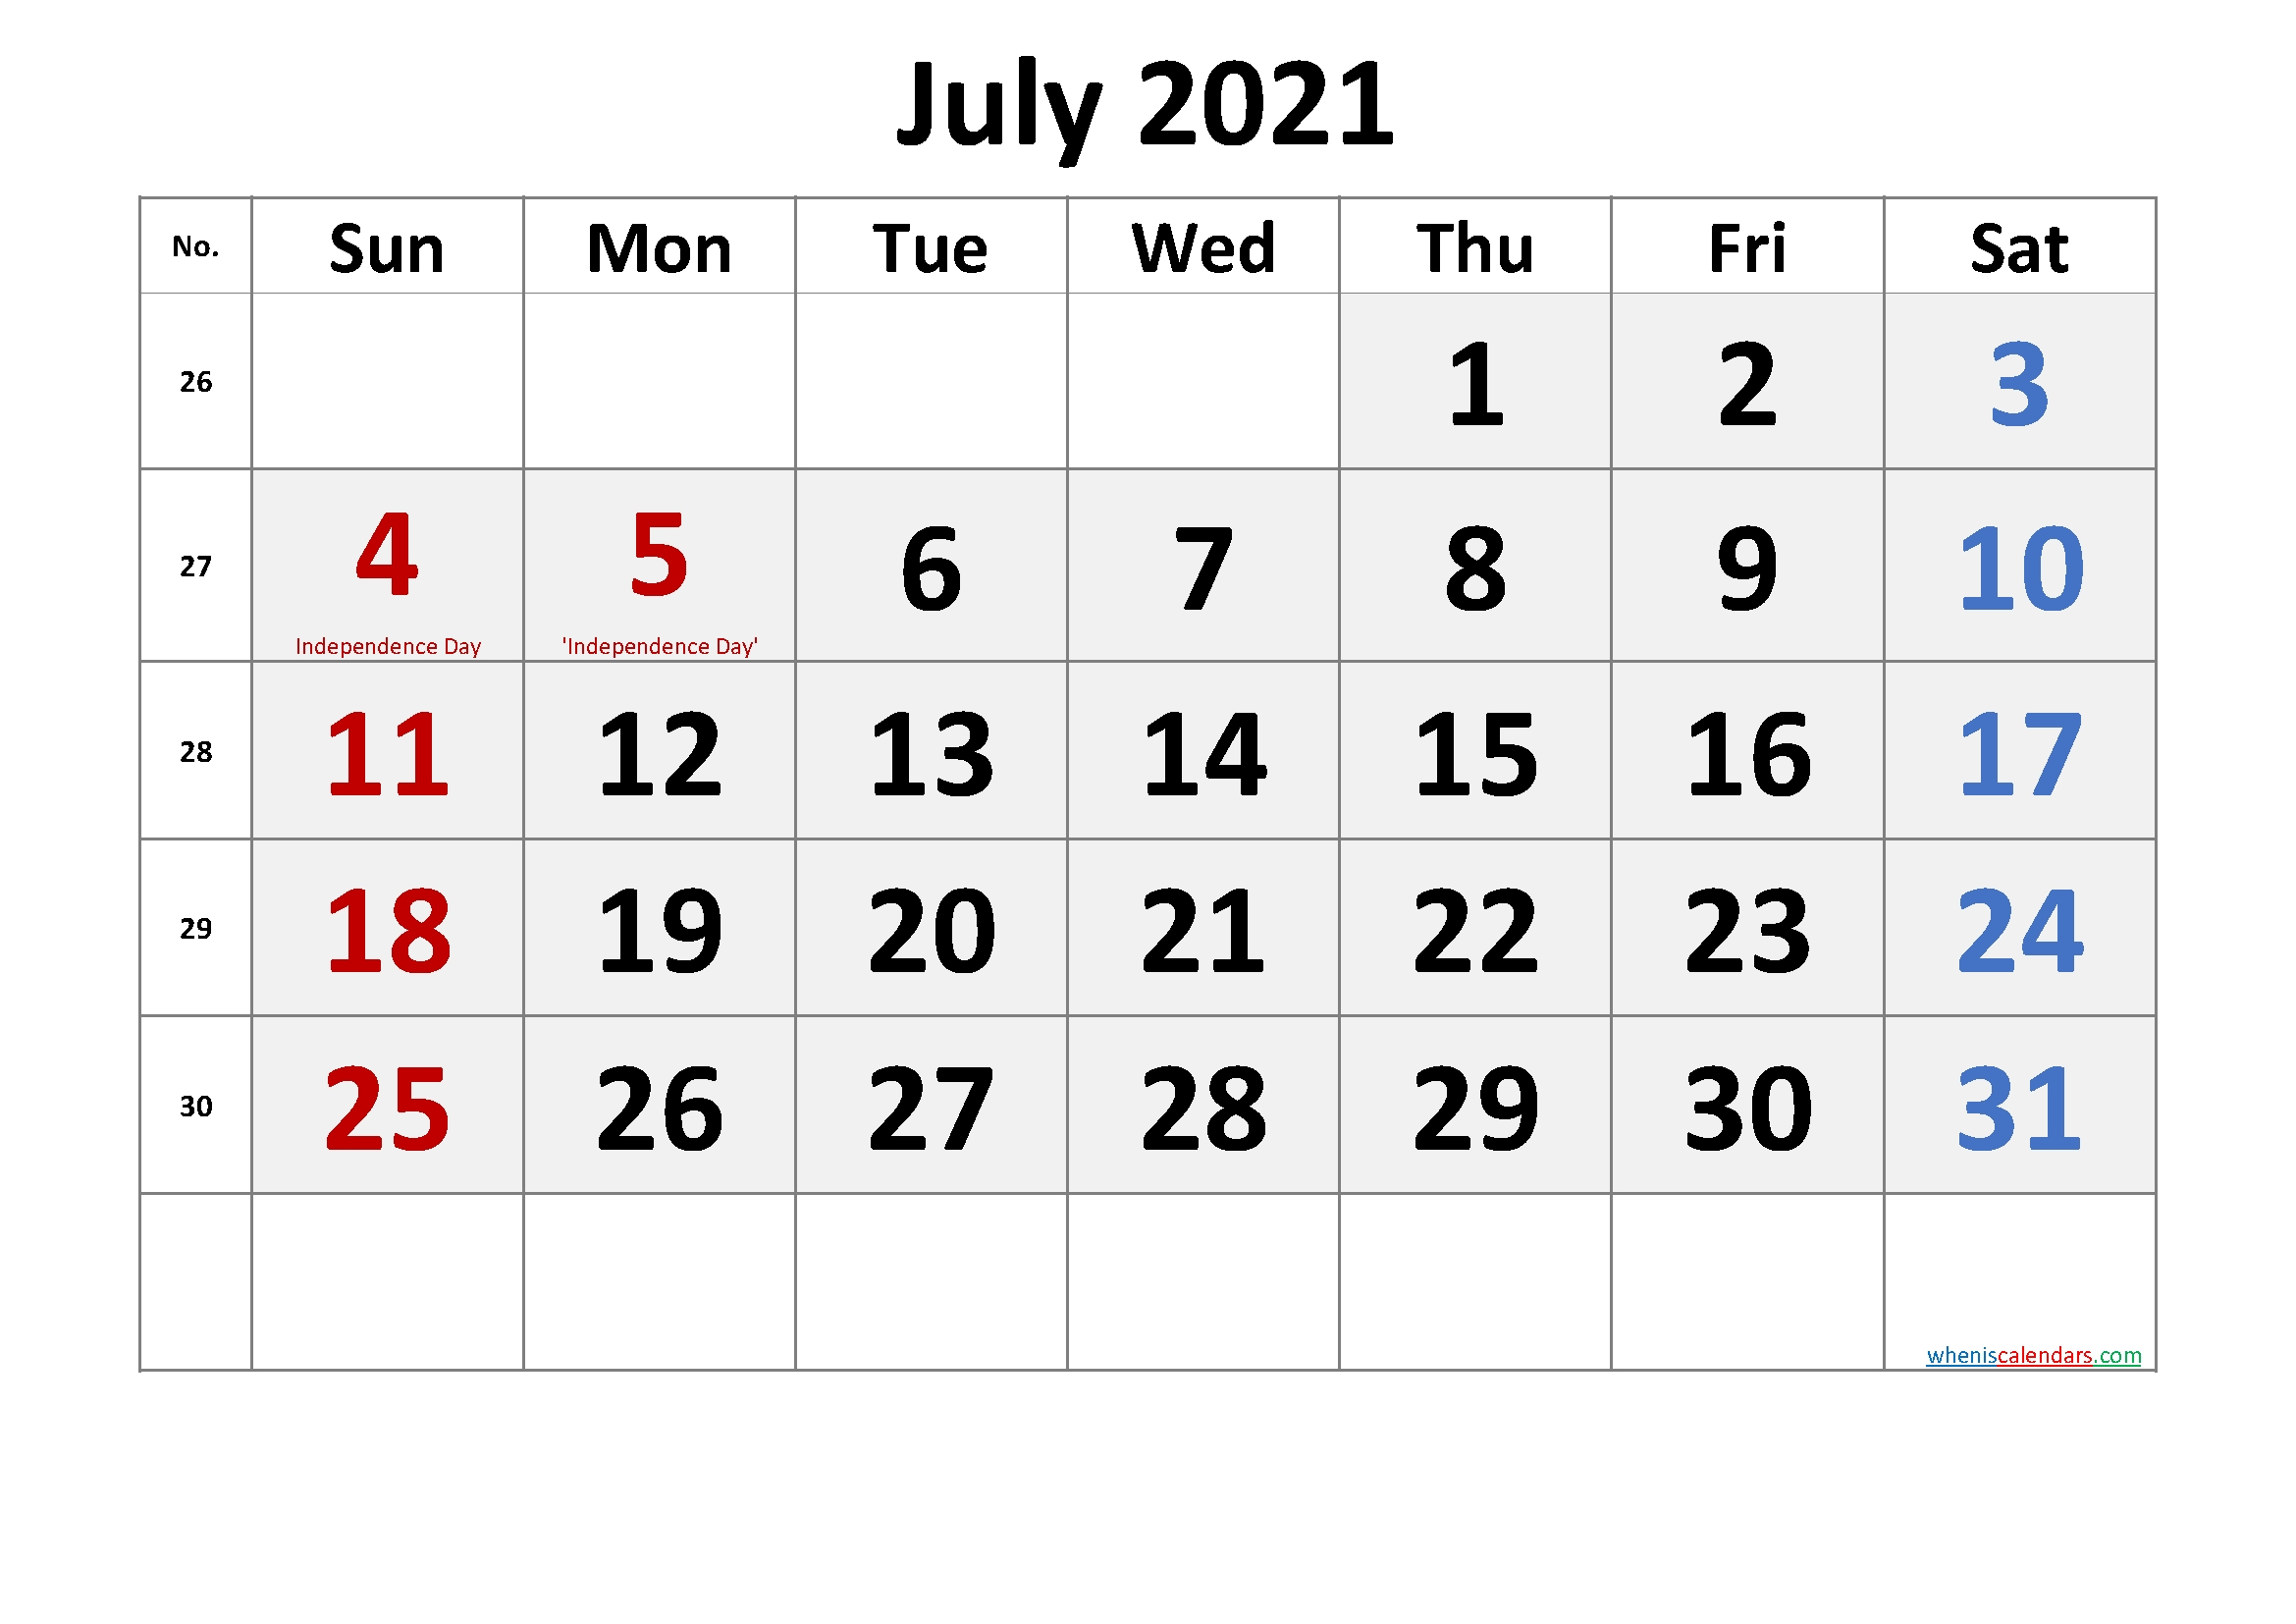 July 2021 Calendar With Holidays Printable-Template No.cr21M55 July 2021 Calendar Pdf Download